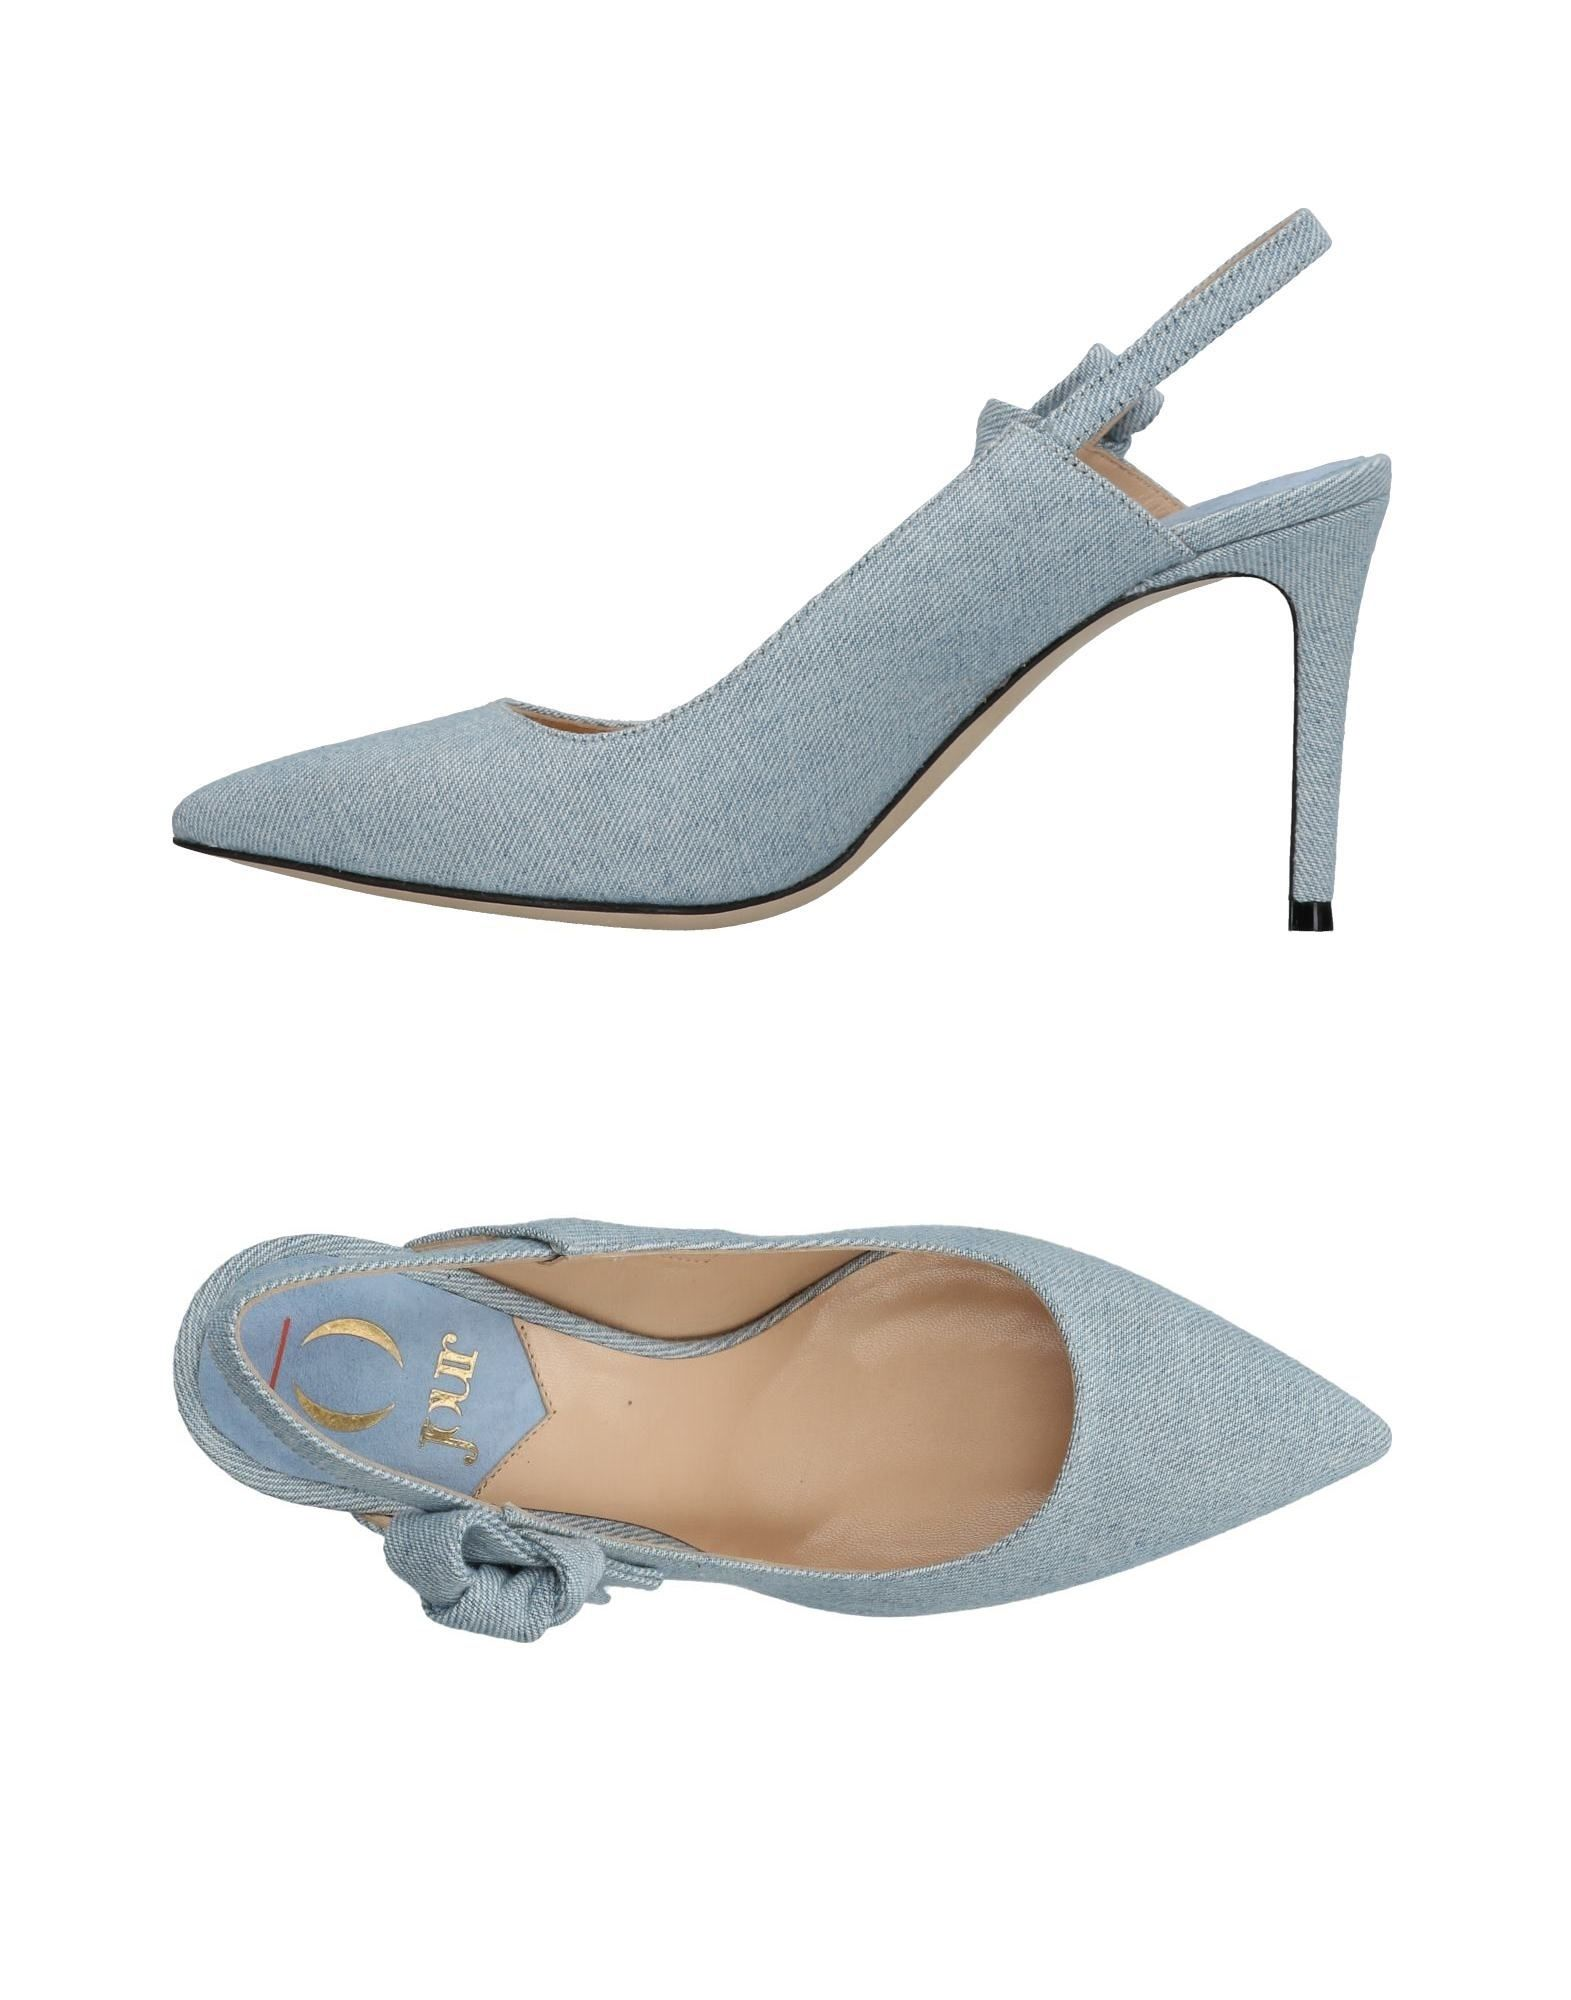 Stilvolle billige Schuhe O Jour Pumps Damen  11418868DU